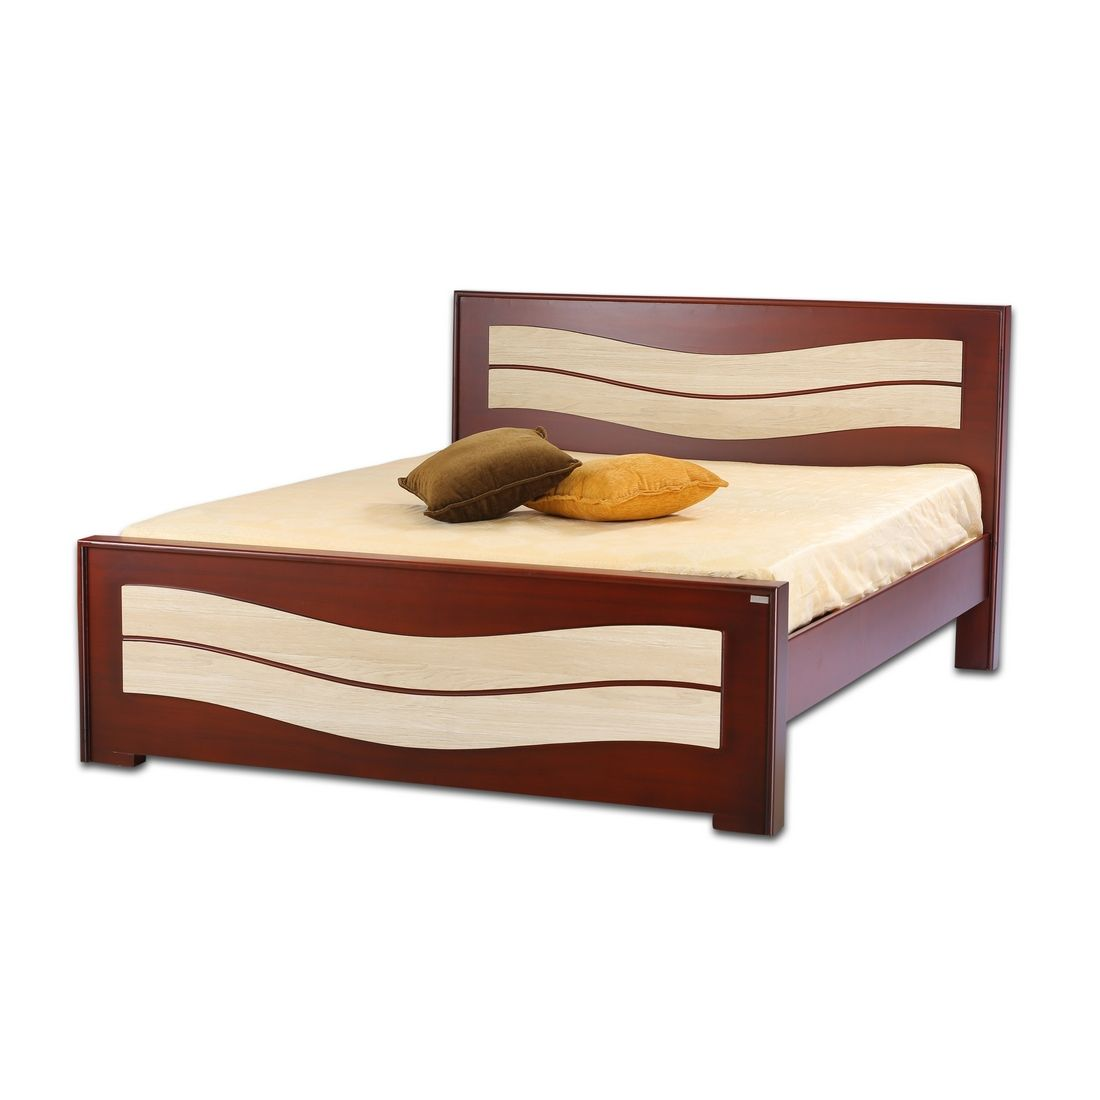 100 Teak Wood Furniture Online India Buy Solid Teak Wood Bed Base Canary Wharf Online In